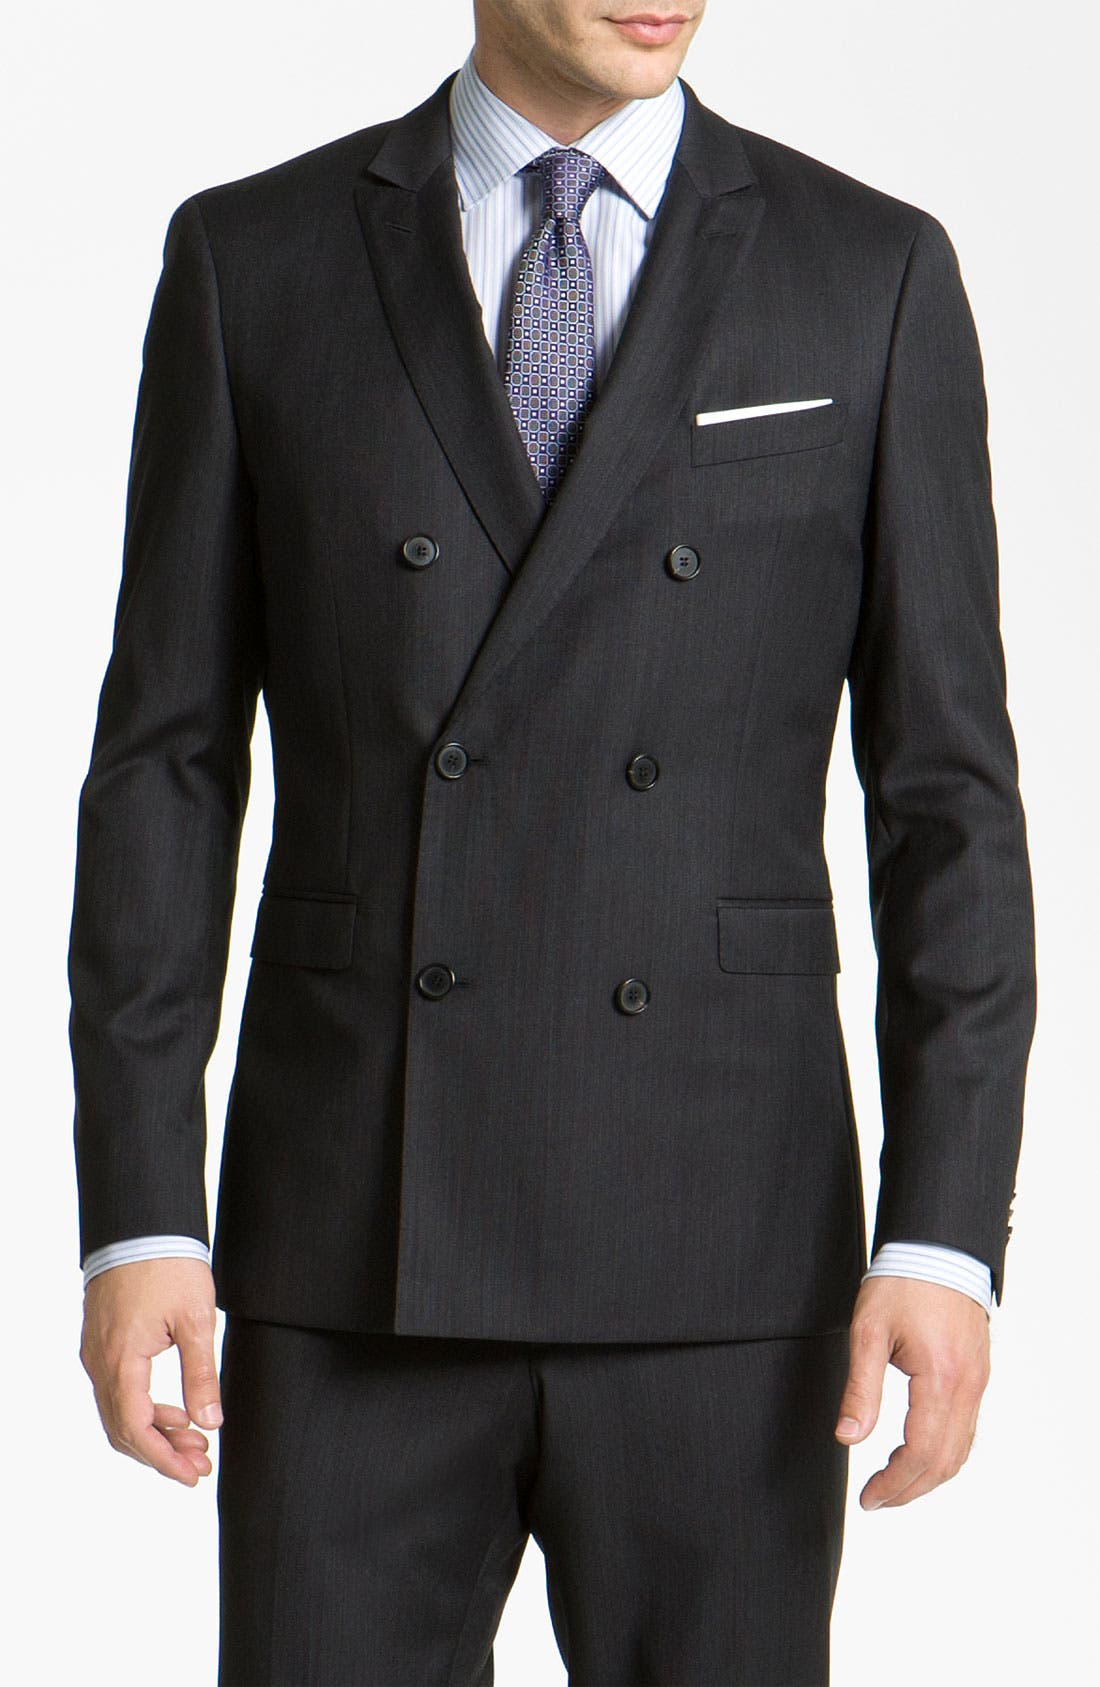 Alternate Image 1 Selected - BOSS Black 'Rusty/Win' Double Breasted Extra Trim Fit Suit